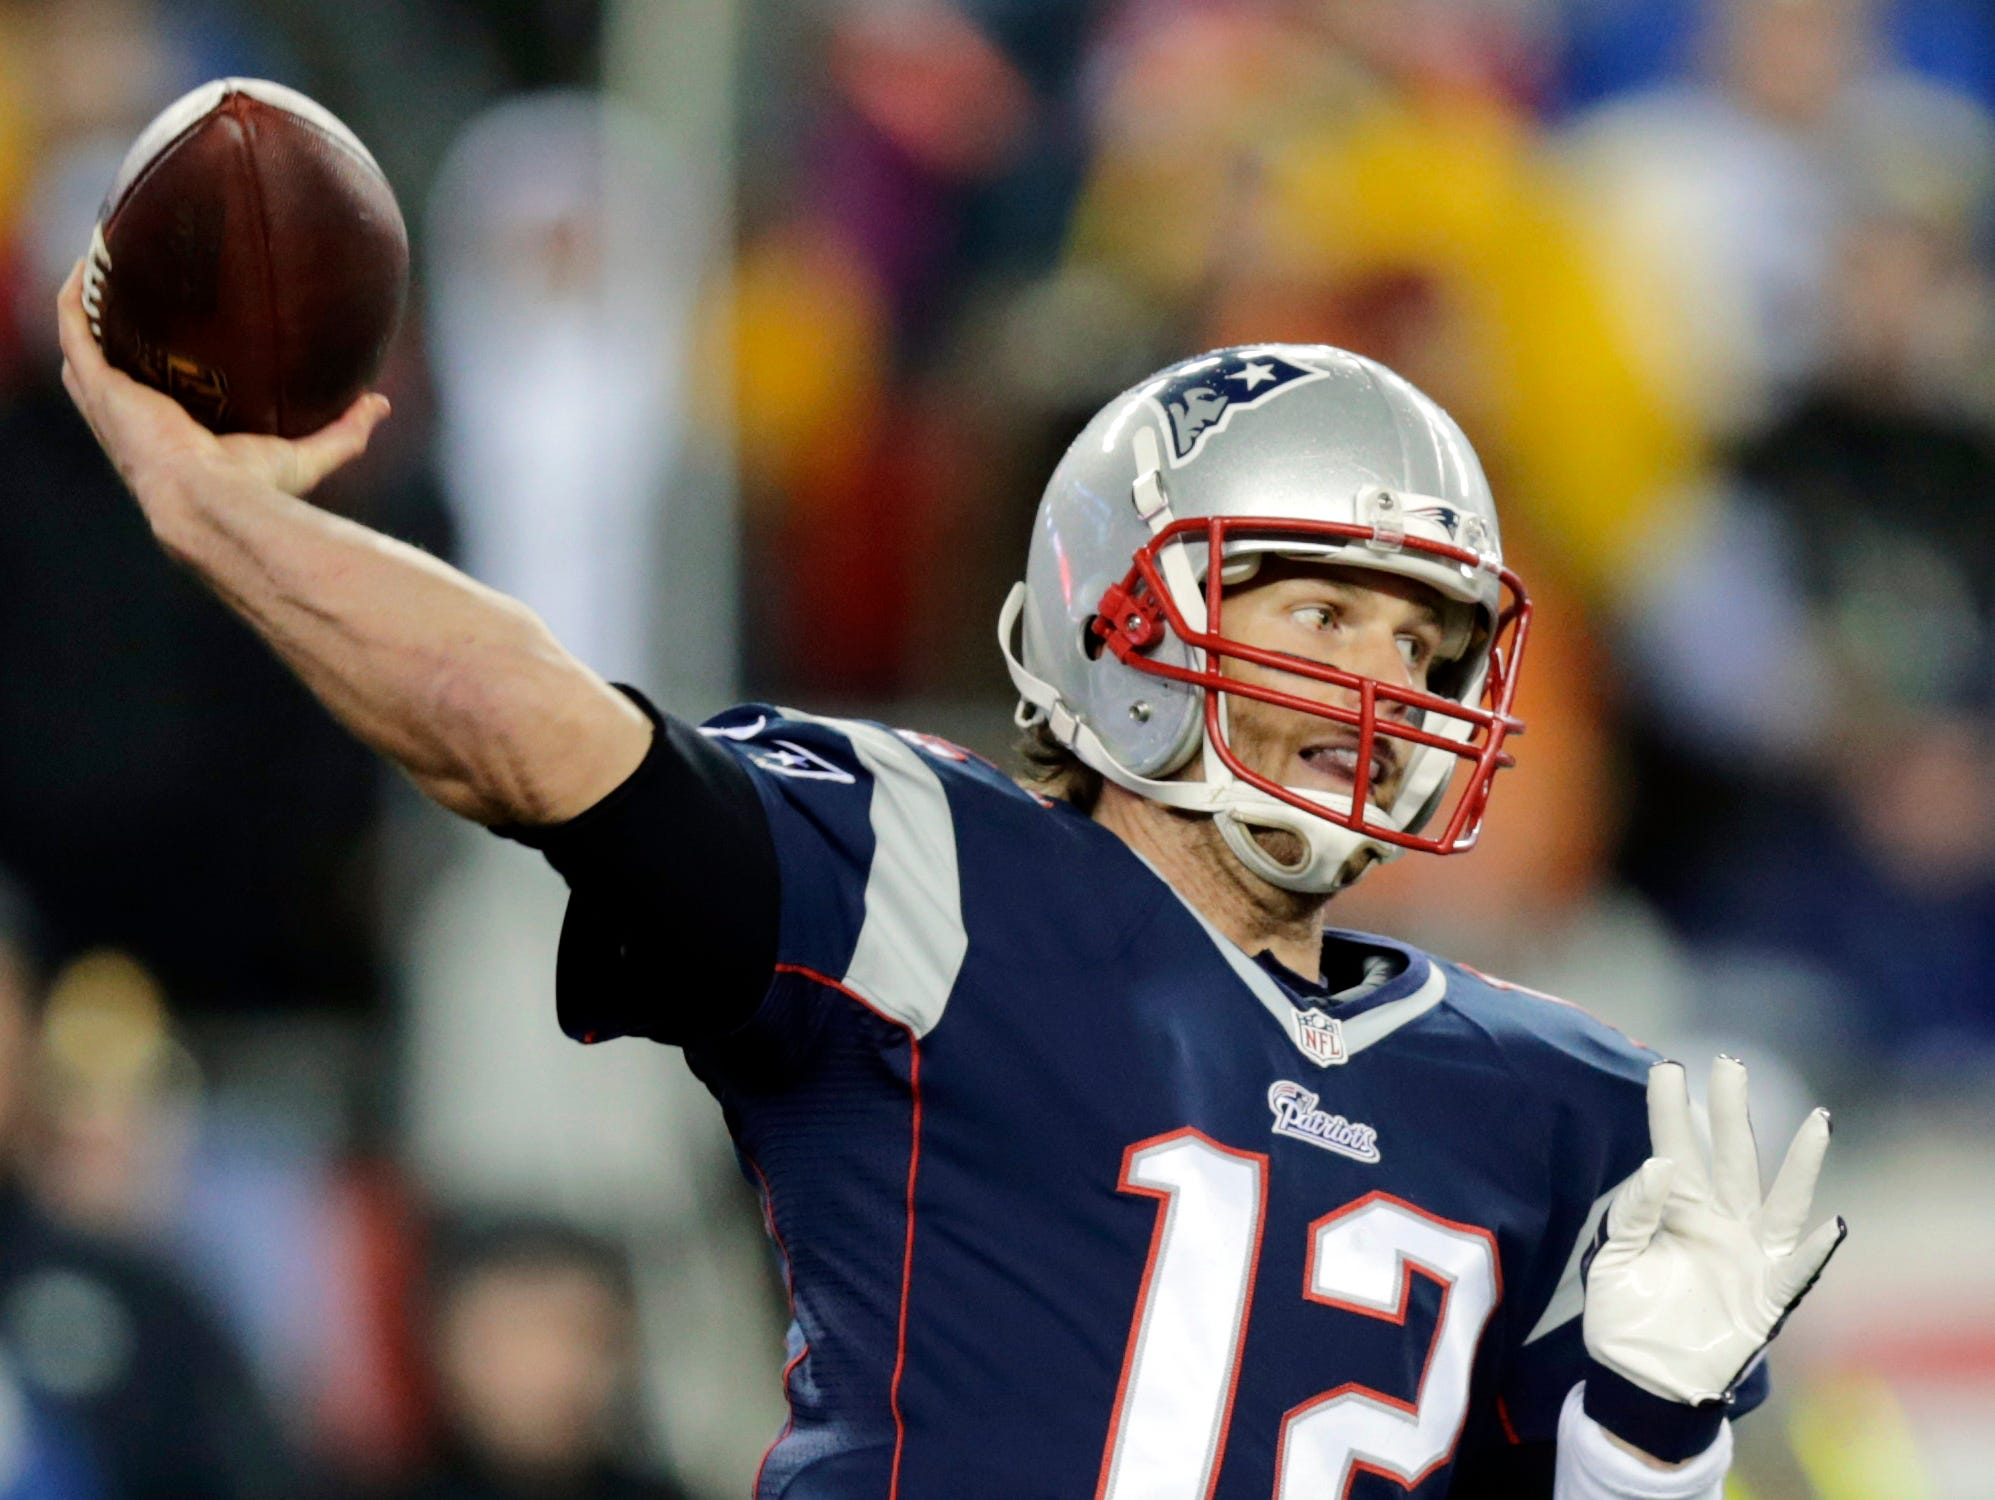 New England Patriots quarterback Tom Brady throws a pass during the first half of the AFC championship game against the Indianapolis Colts in Foxborough, Mass.